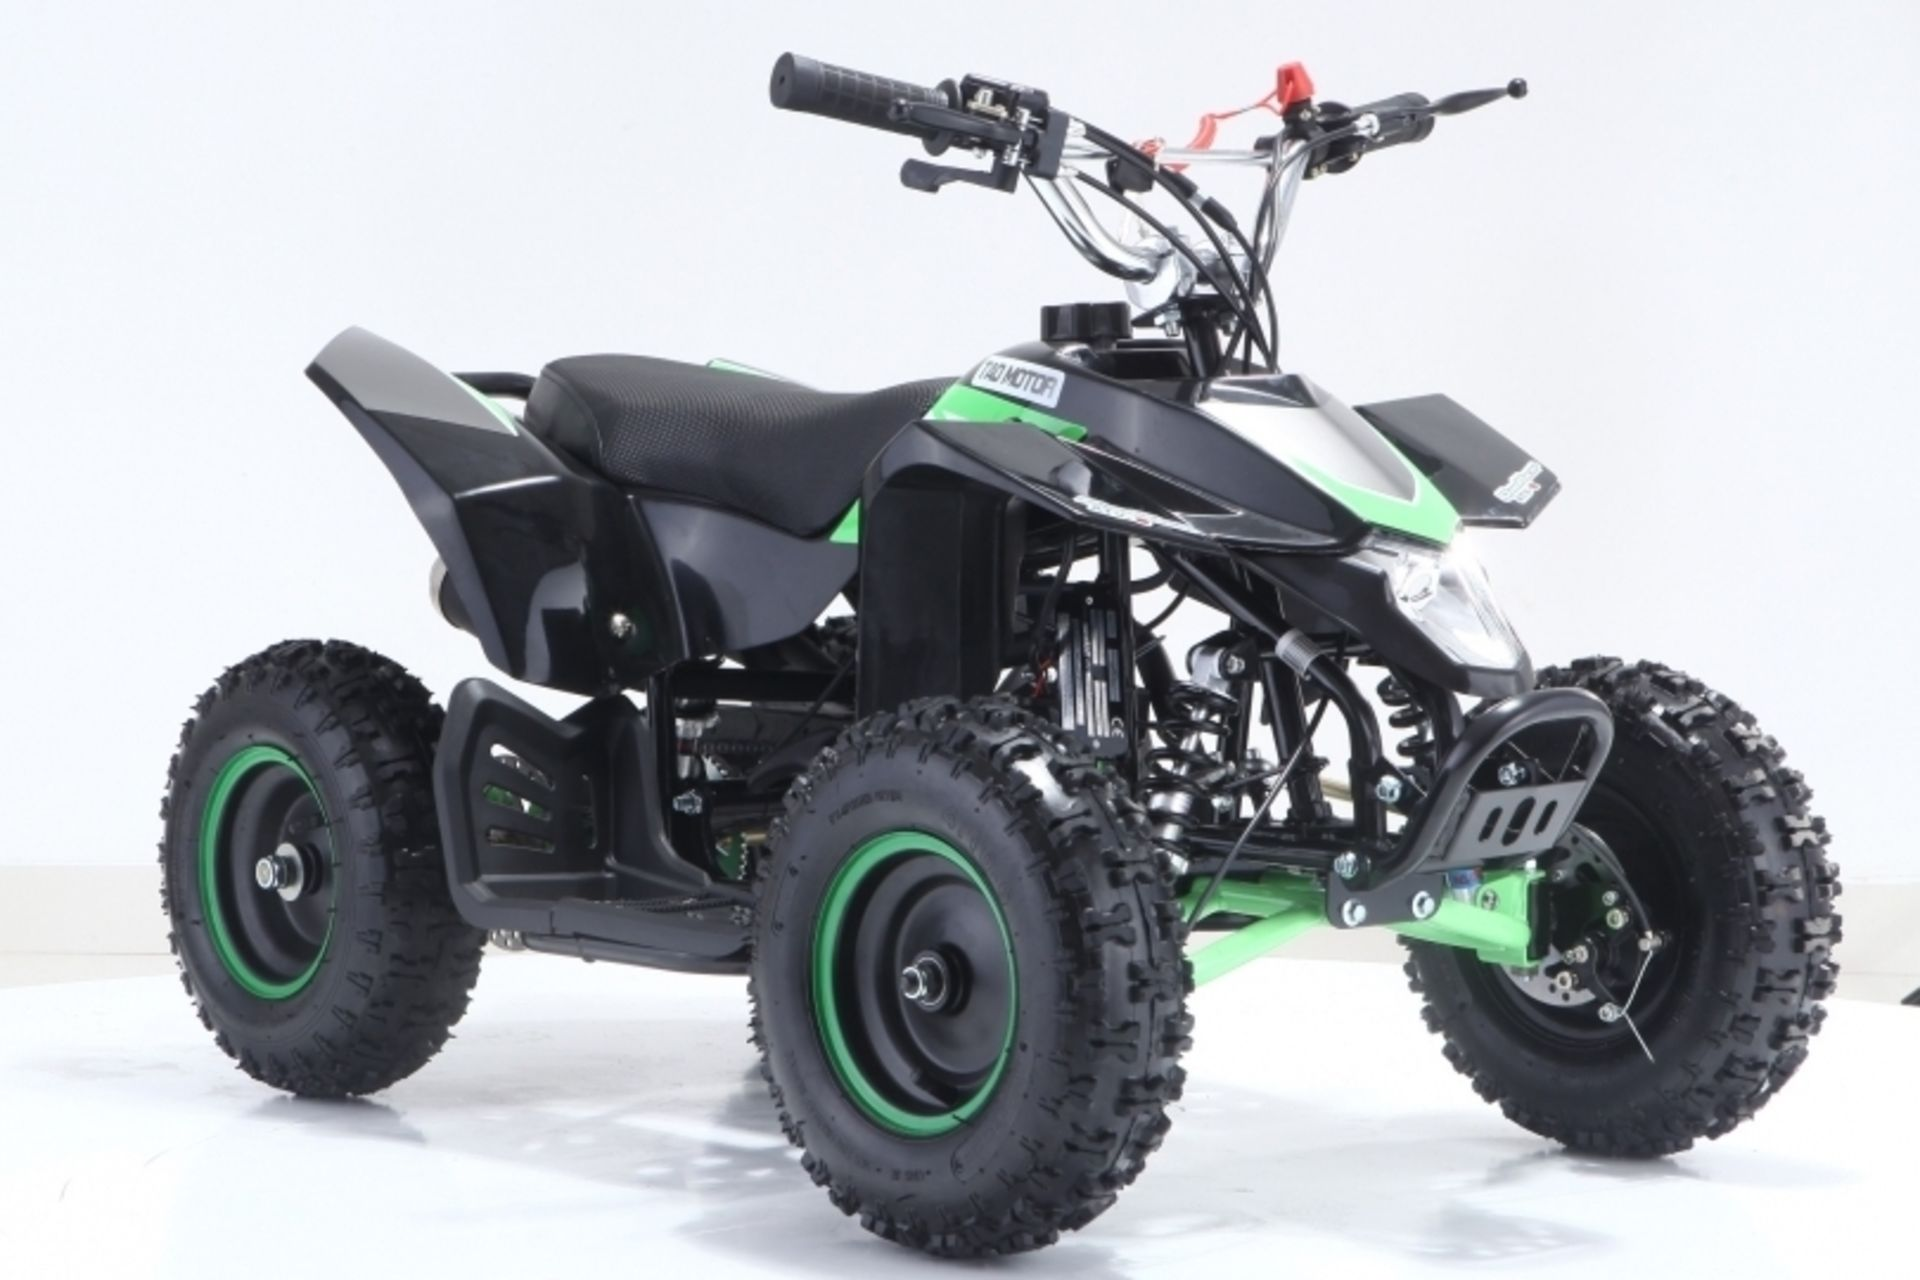 Lot 23514 - V Brand New 50cc Avenger Mini Off Road Quad Bike - Green & Black or White & Orange - Air Cooled -